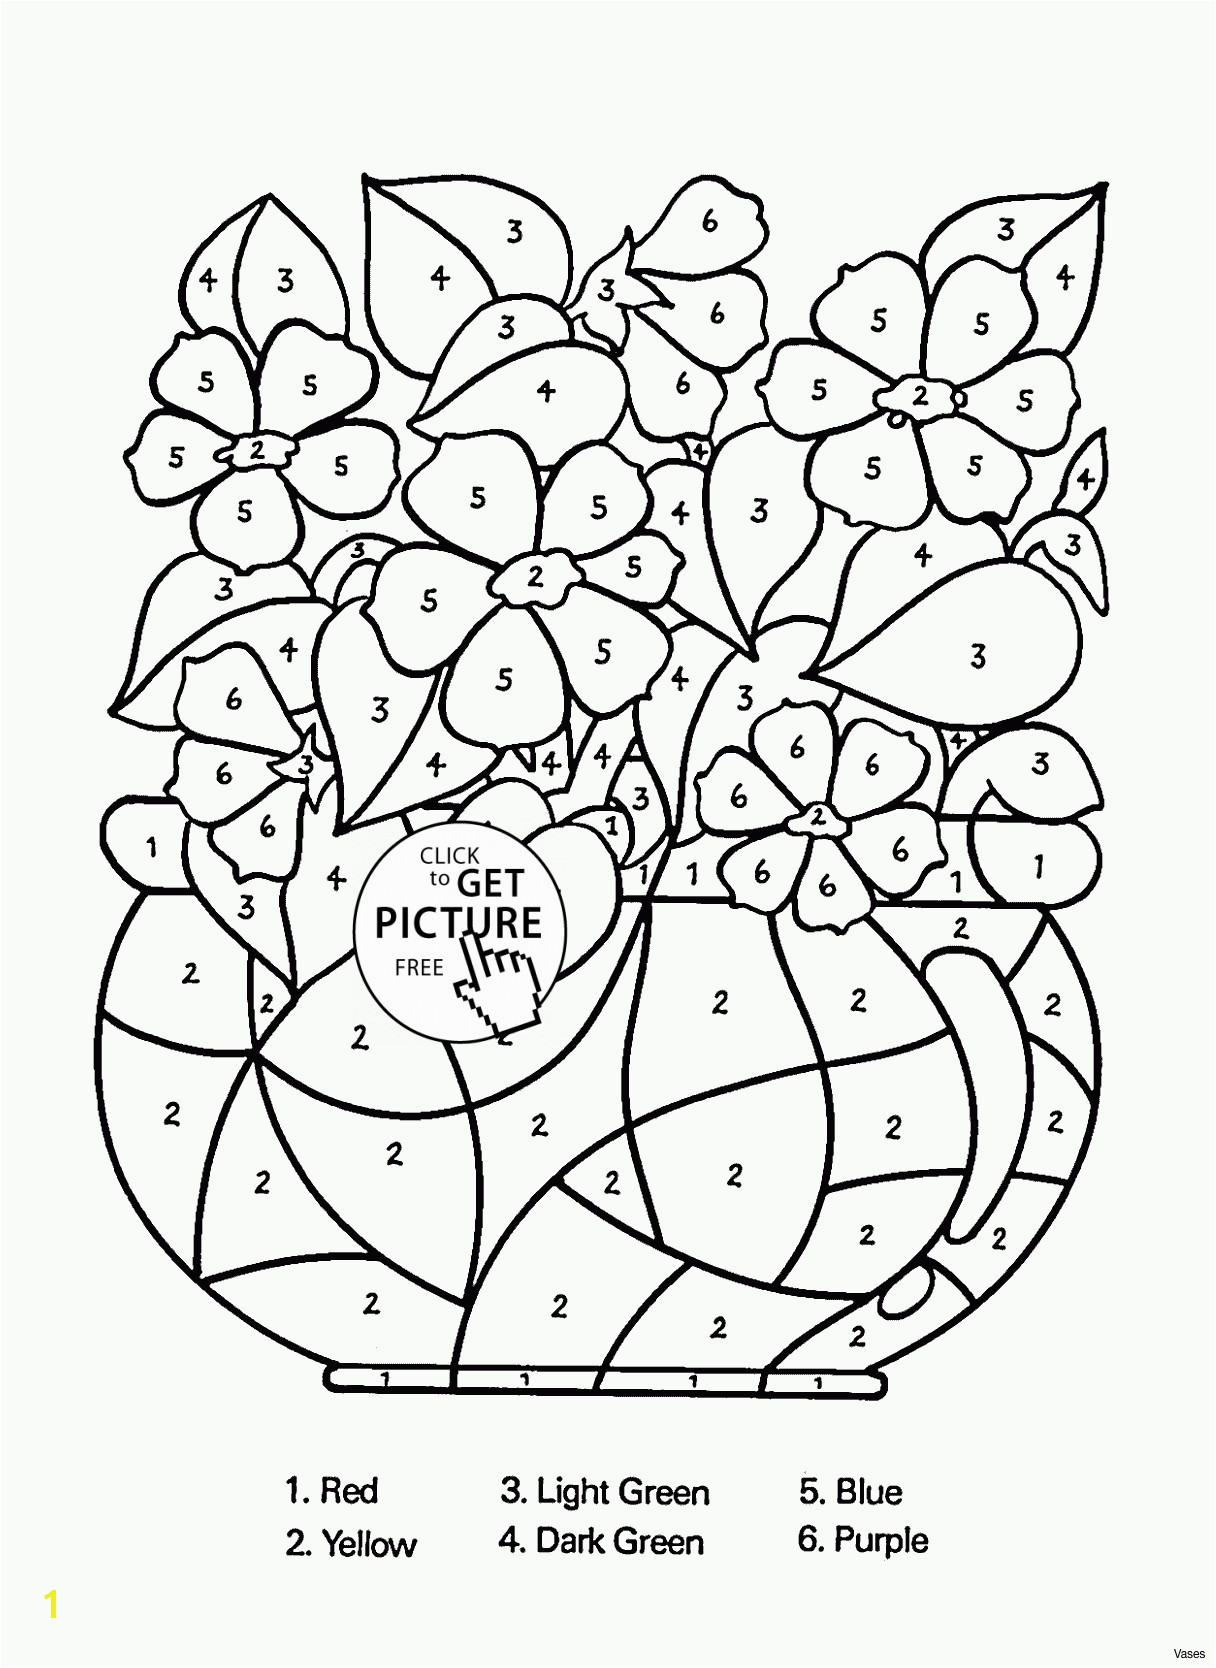 Heathermarxgallery Free Fall Coloring Pages New Printable Free Kids S Best Page Coloring 0d Free Coloring